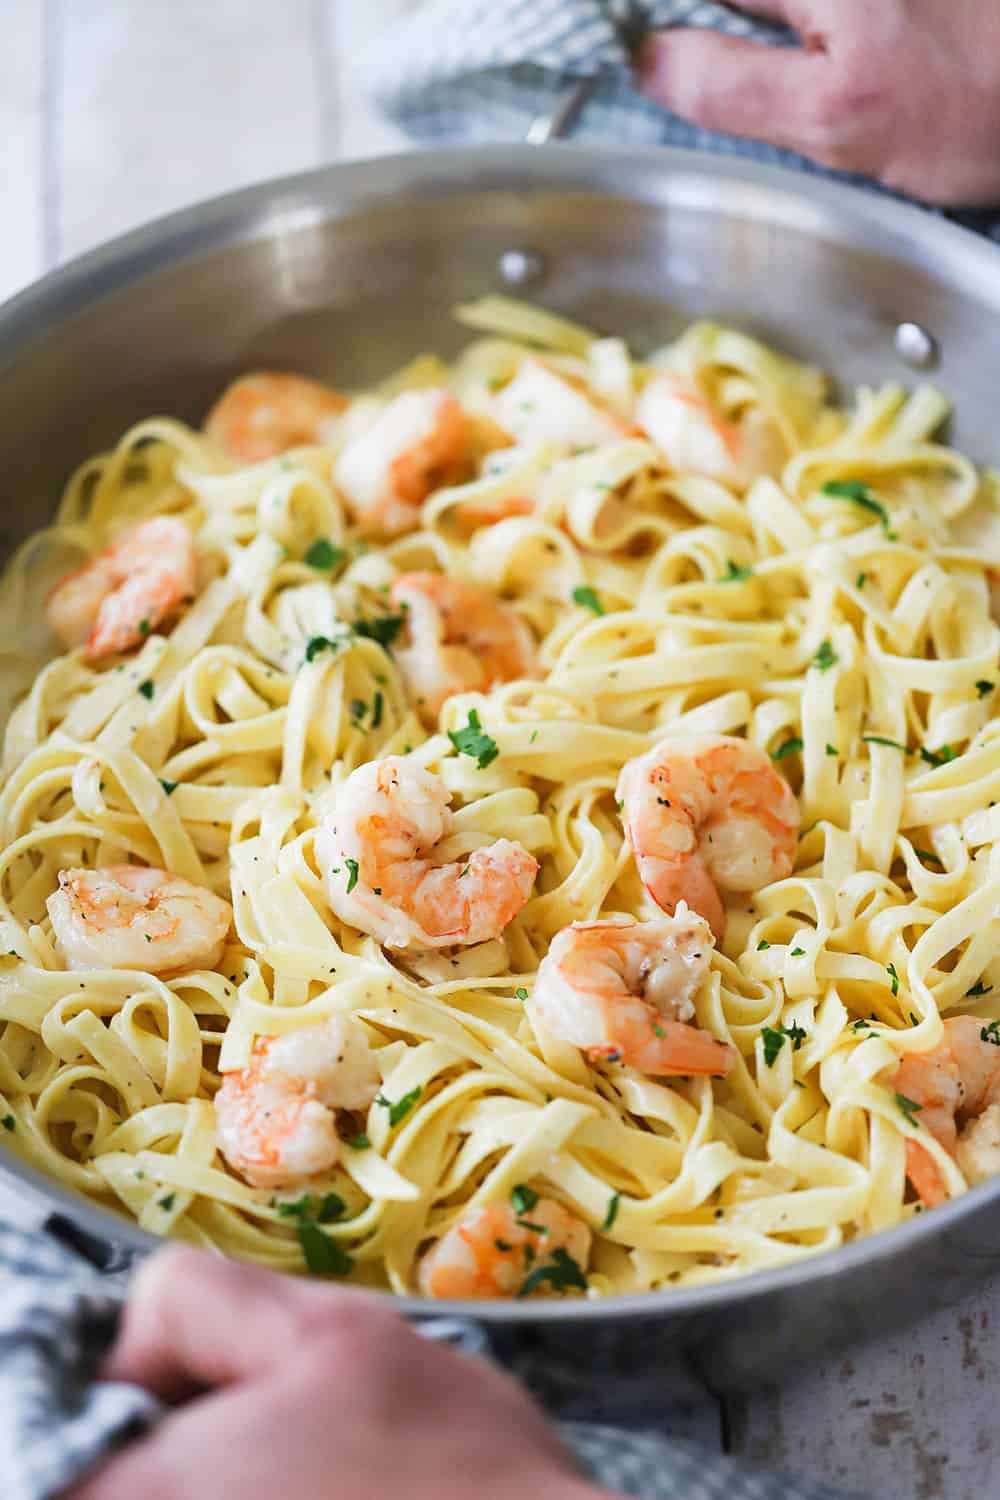 Two hands holding a large stainless steel skillet filled with shrimp fettuccine alfredo.